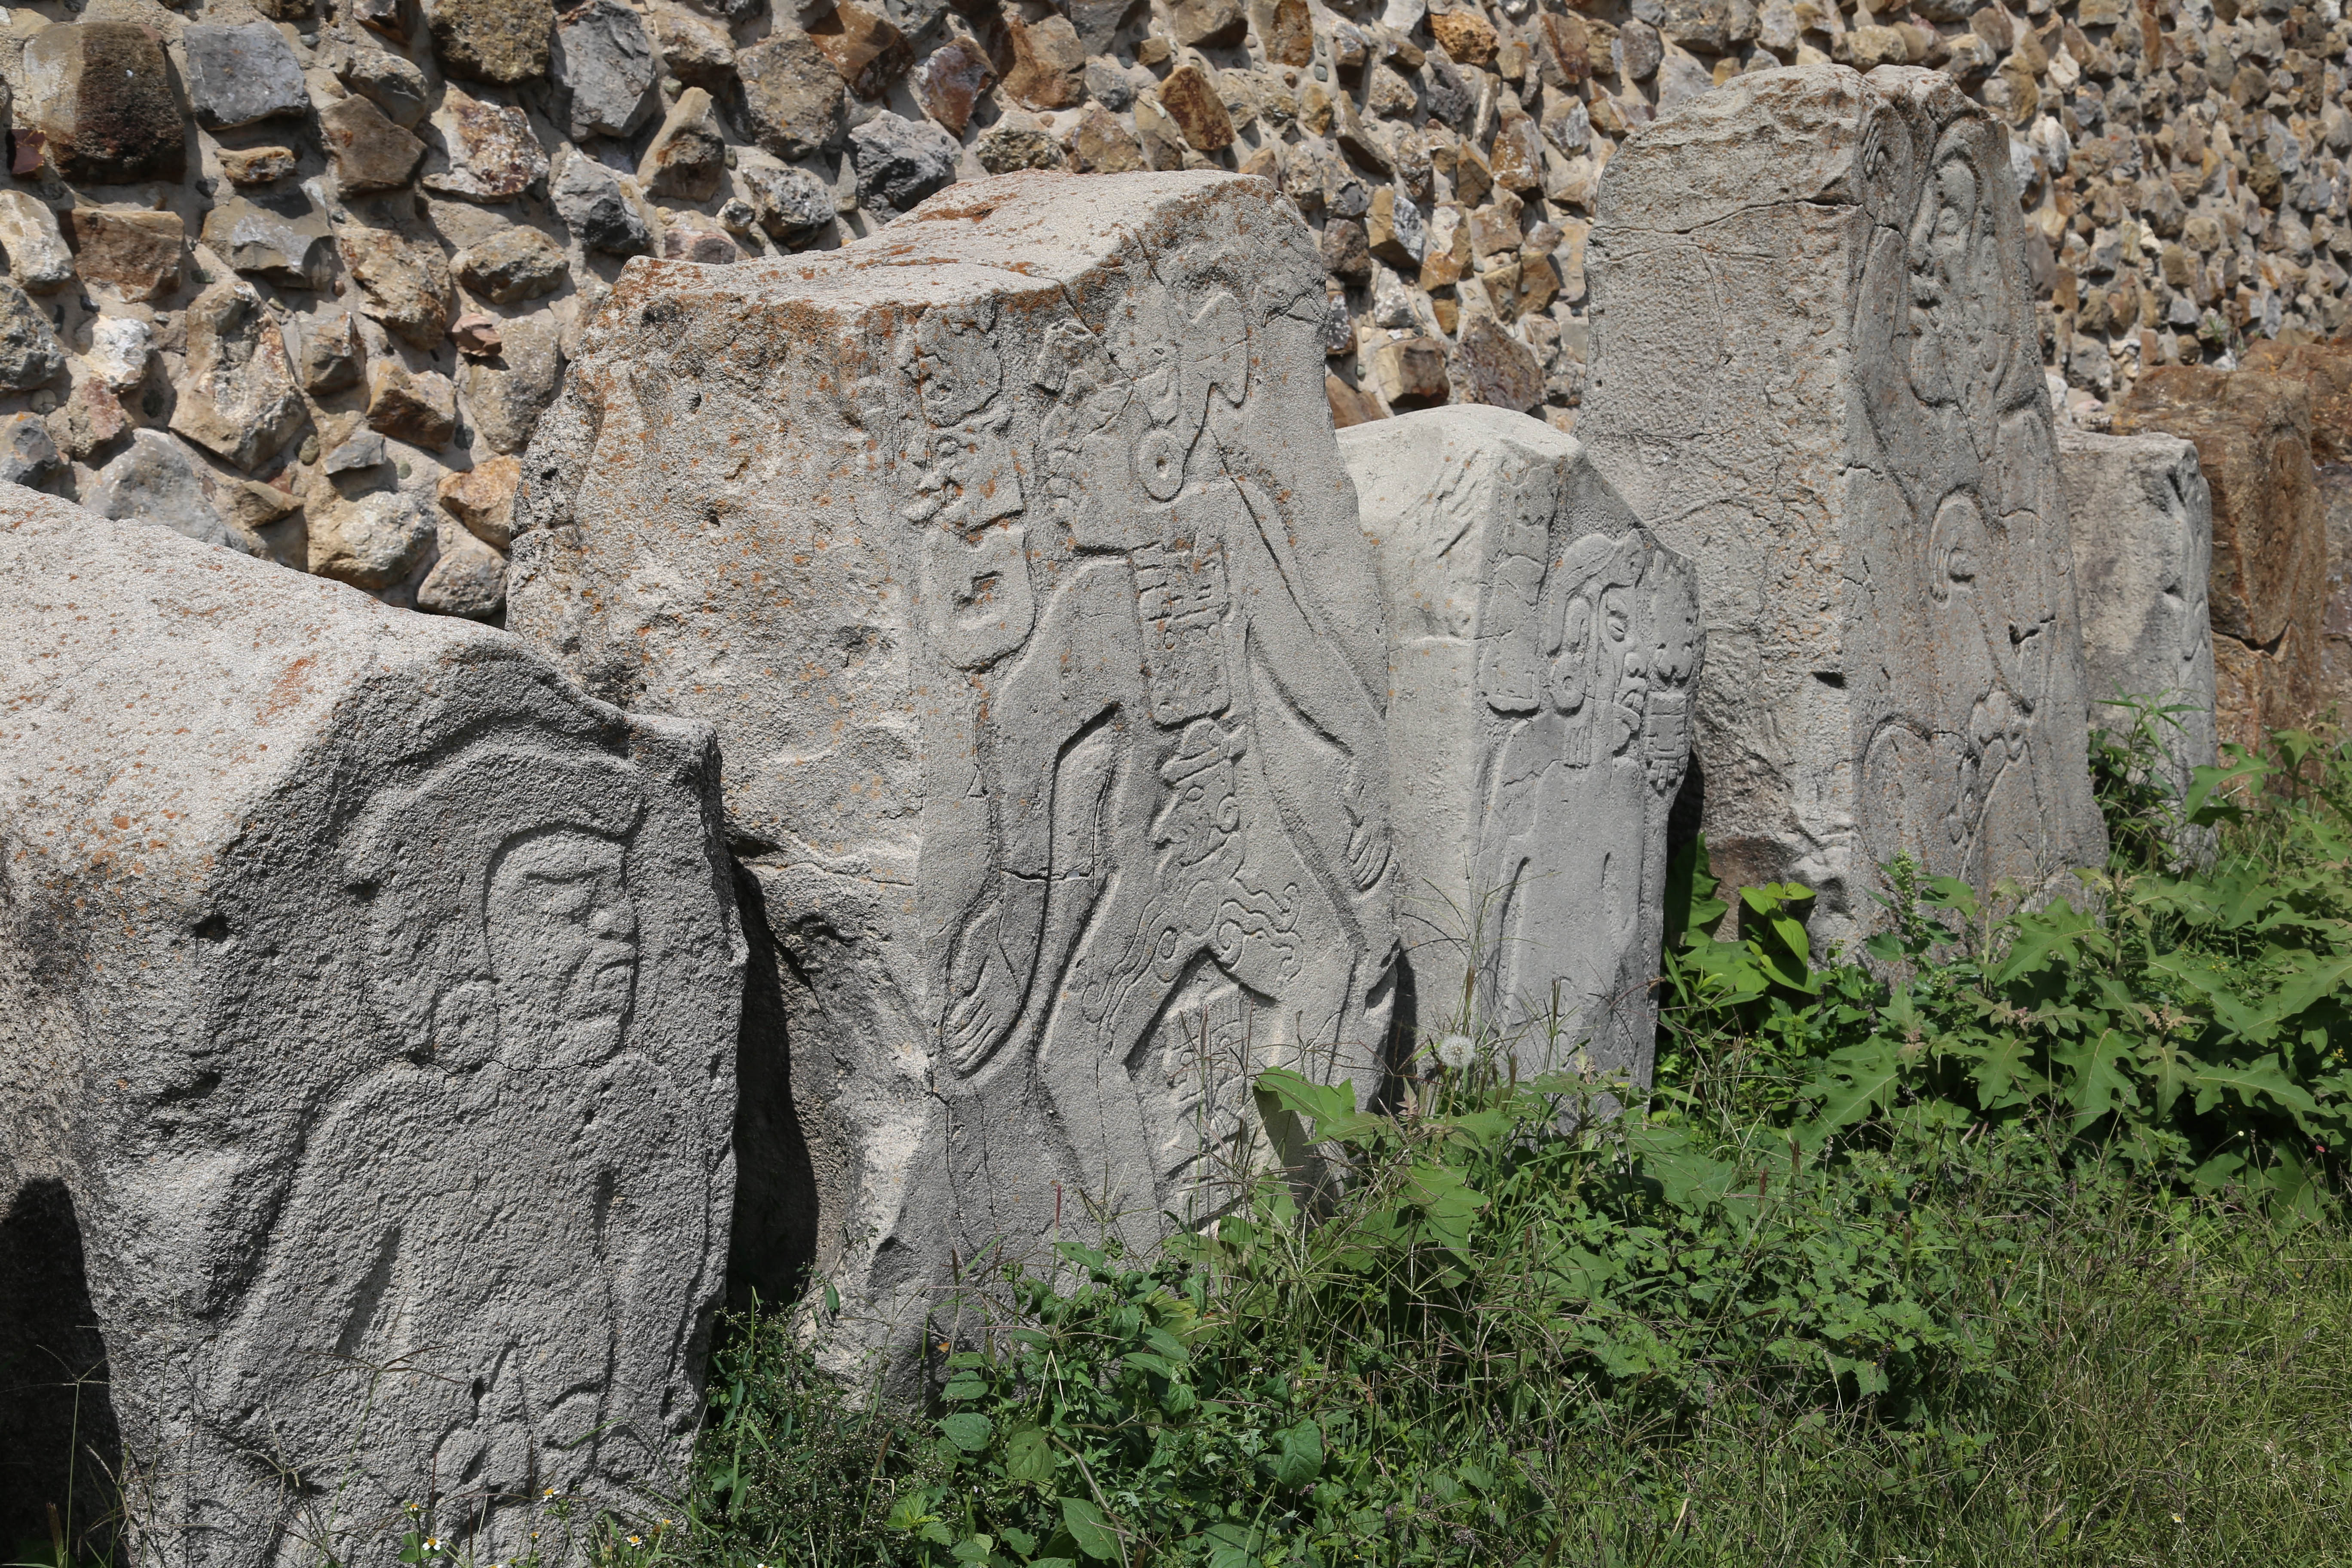 These replica carvings are left near where the originals were discovered by researchers.